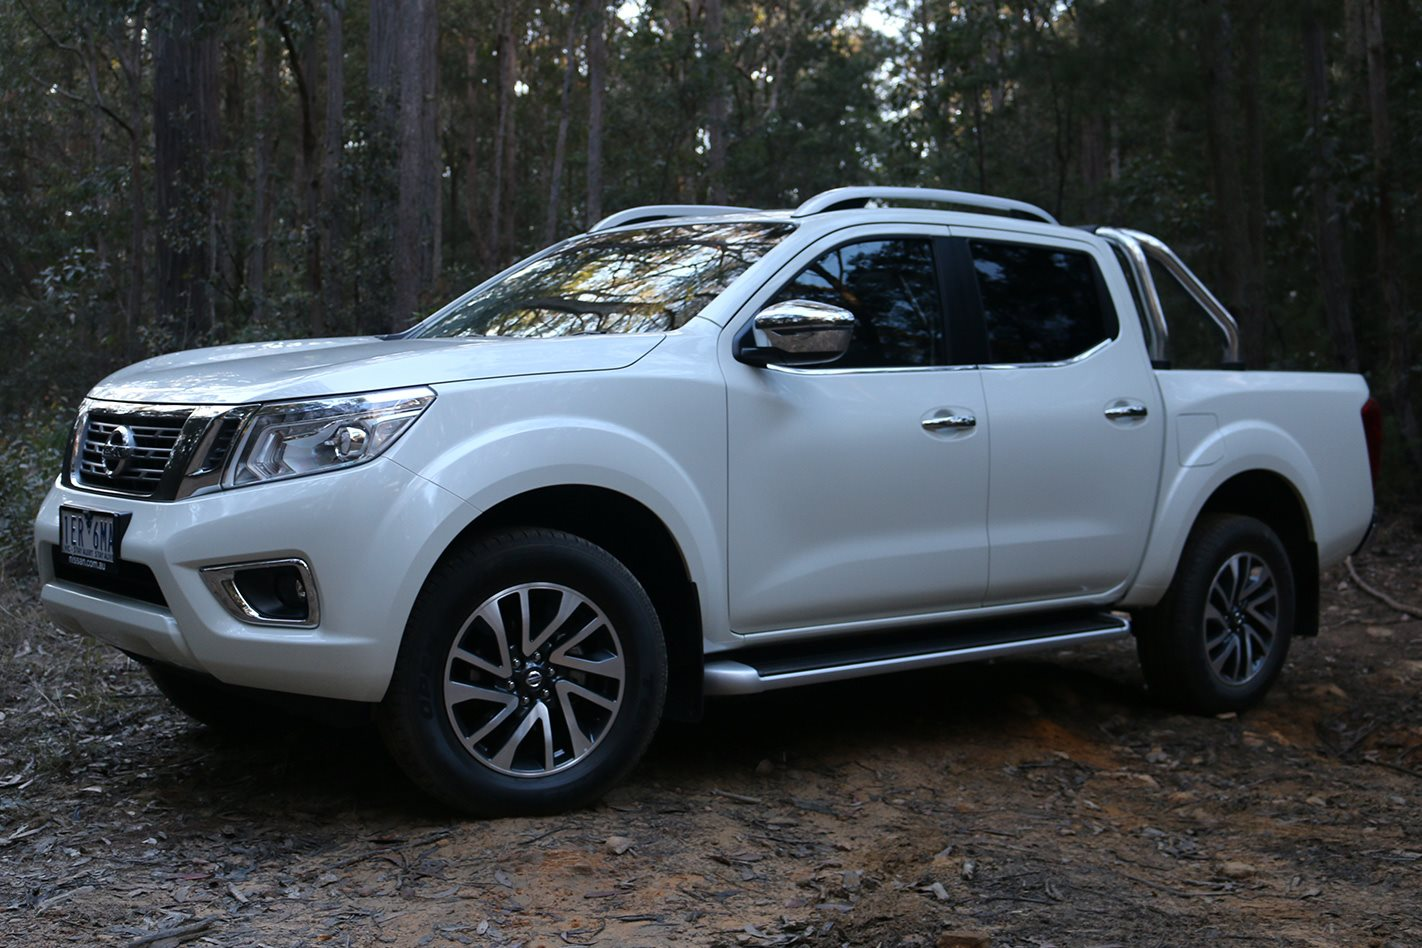 nissan navara st x 4x4 review 4x4 australia. Black Bedroom Furniture Sets. Home Design Ideas